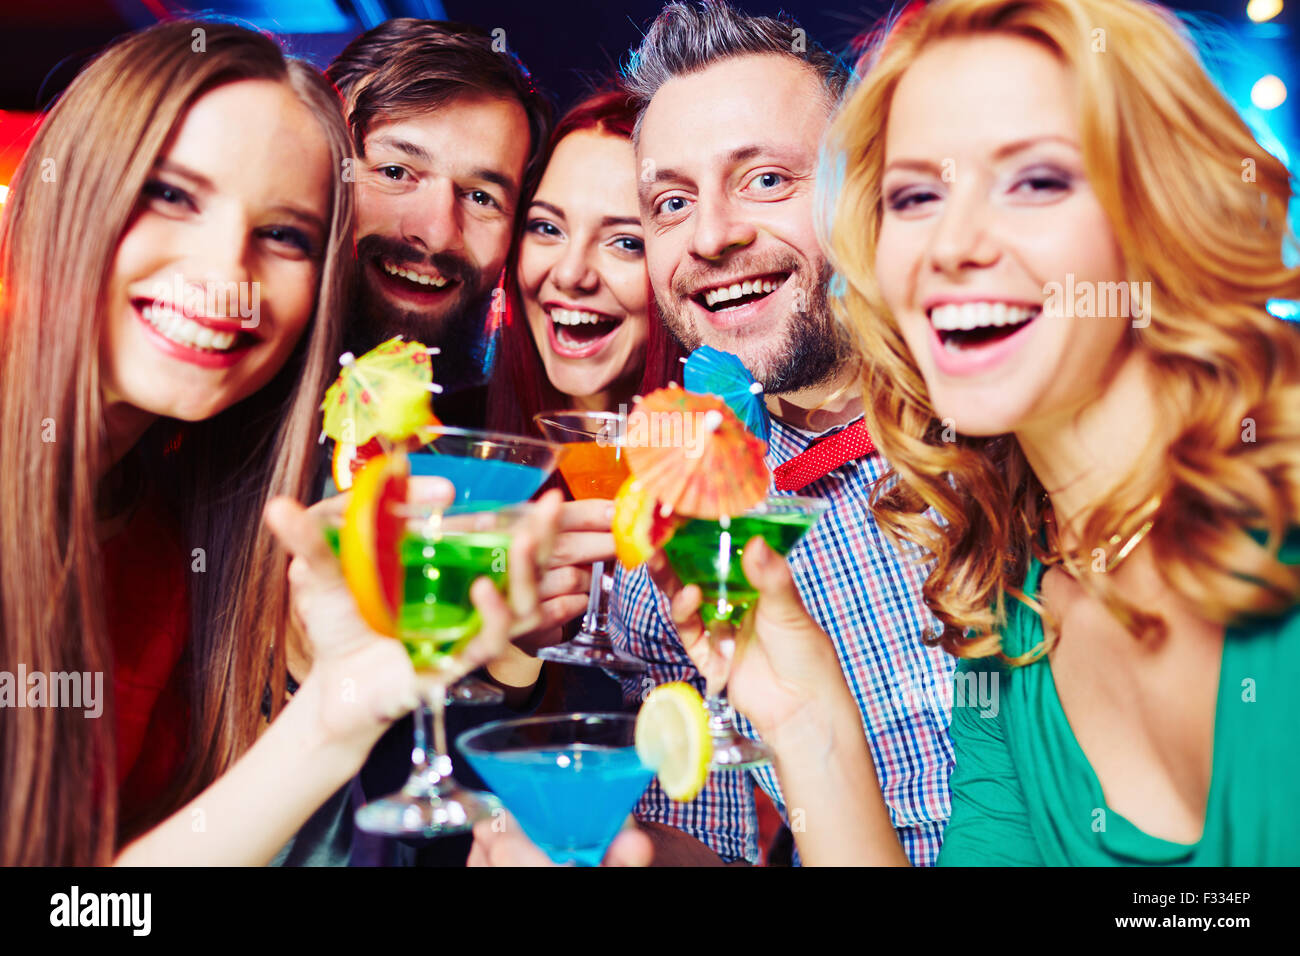 Ecstatic young people with cocktails cheering at party - Stock Image